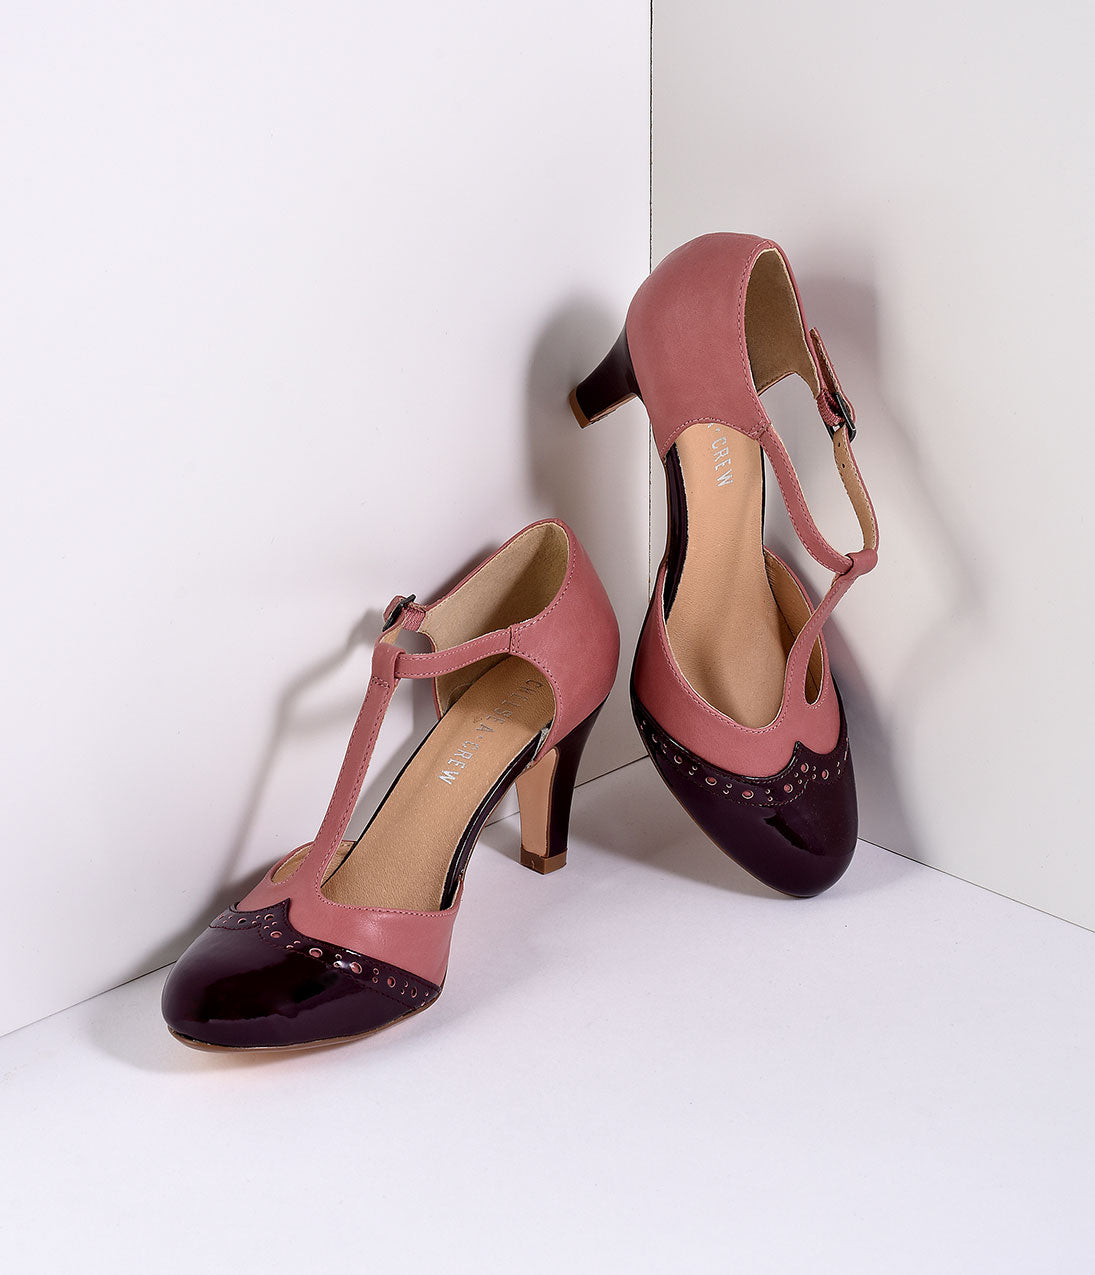 Vintage Style Shoes, Vintage Inspired Shoes Mauve Pink  Burgundy Gatsby T-Strap Pumps $64.00 AT vintagedancer.com